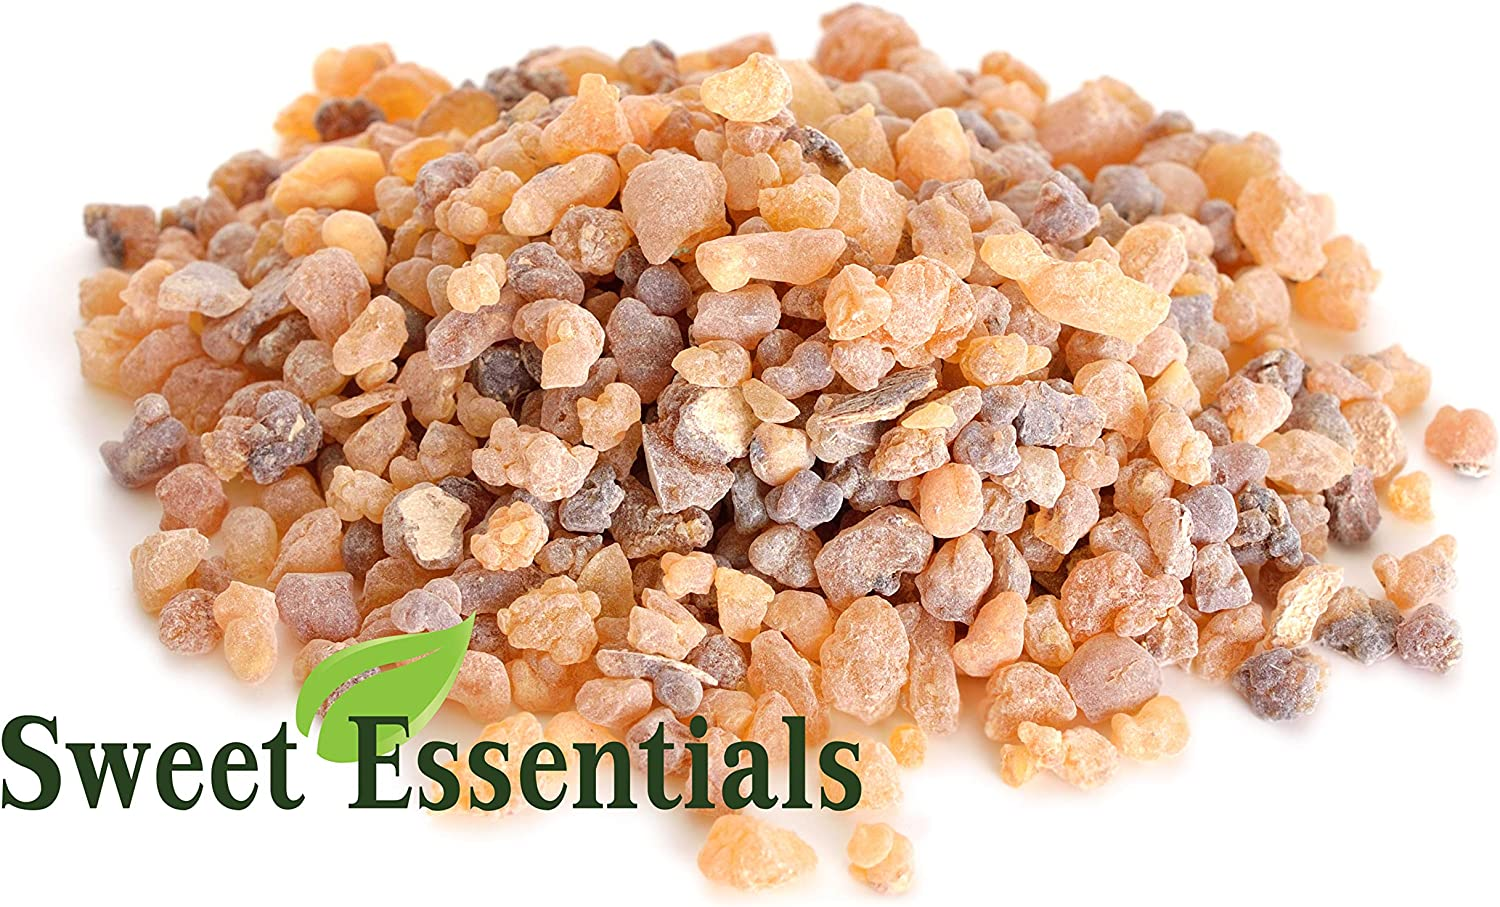 Sweet Essentials 100% Pure Organic Frankincense Resin/Tears - 8oz